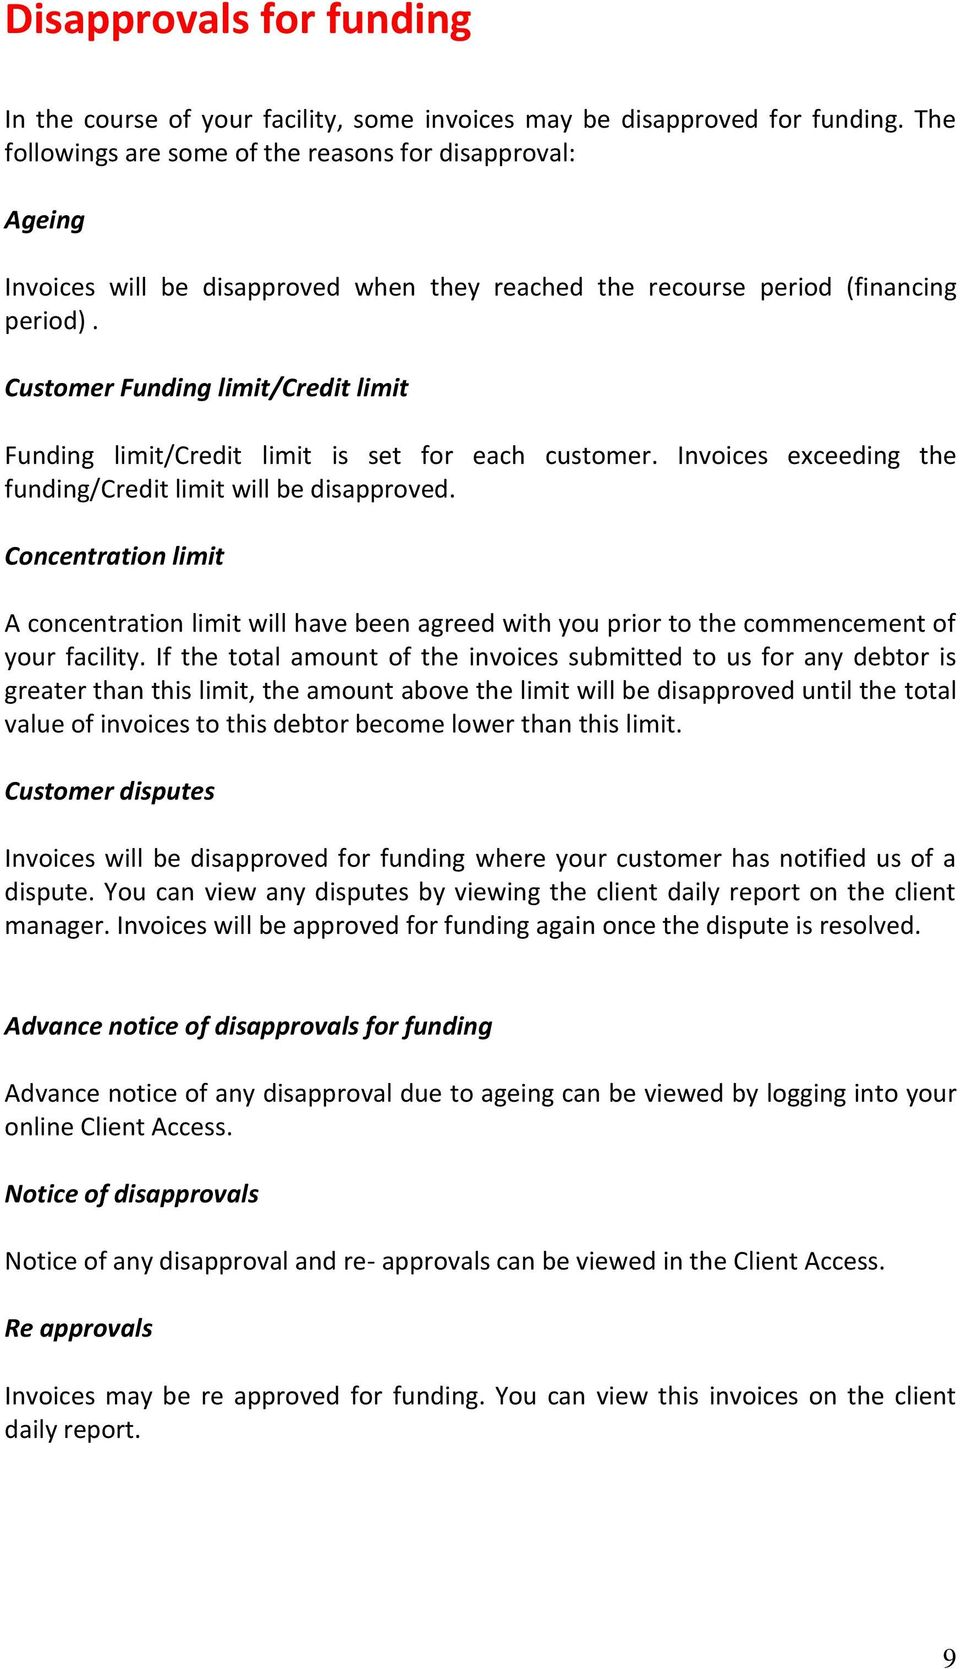 Customer Funding limit/credit limit Funding limit/credit limit is set for each customer. Invoices exceeding the funding/credit limit will be disapproved.